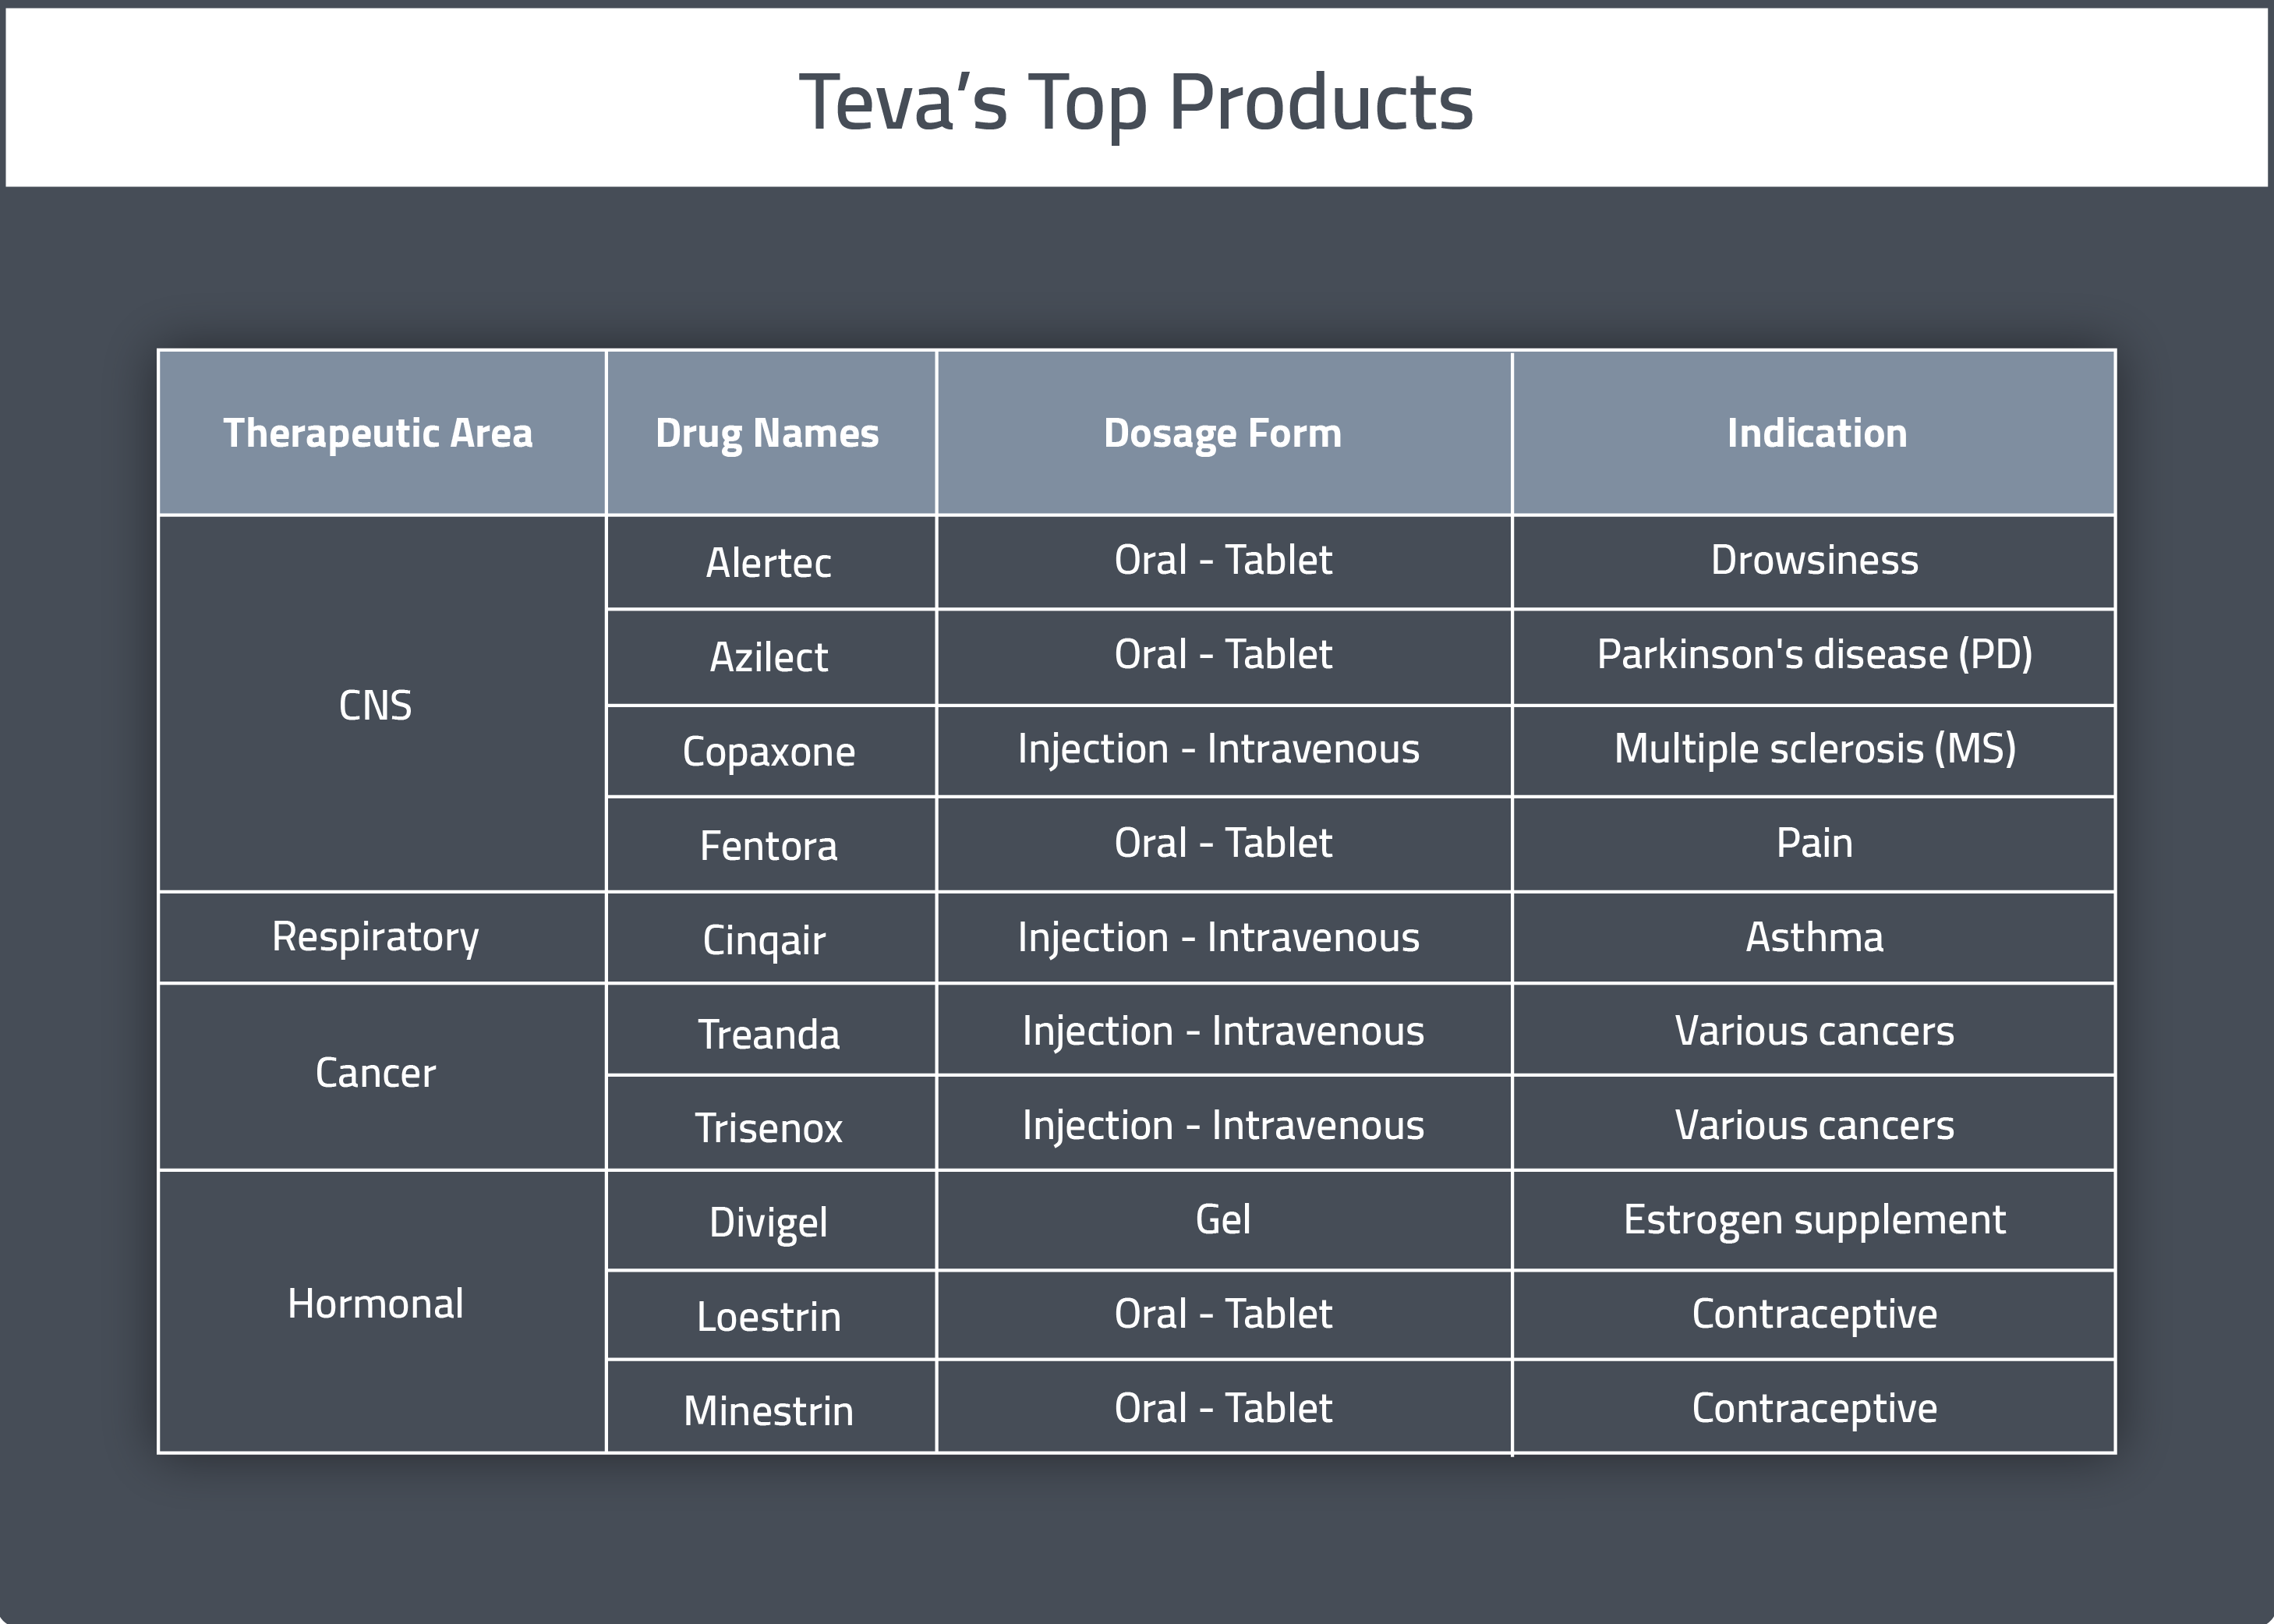 Table of Teva Pharmaceuticals Top Drug Products